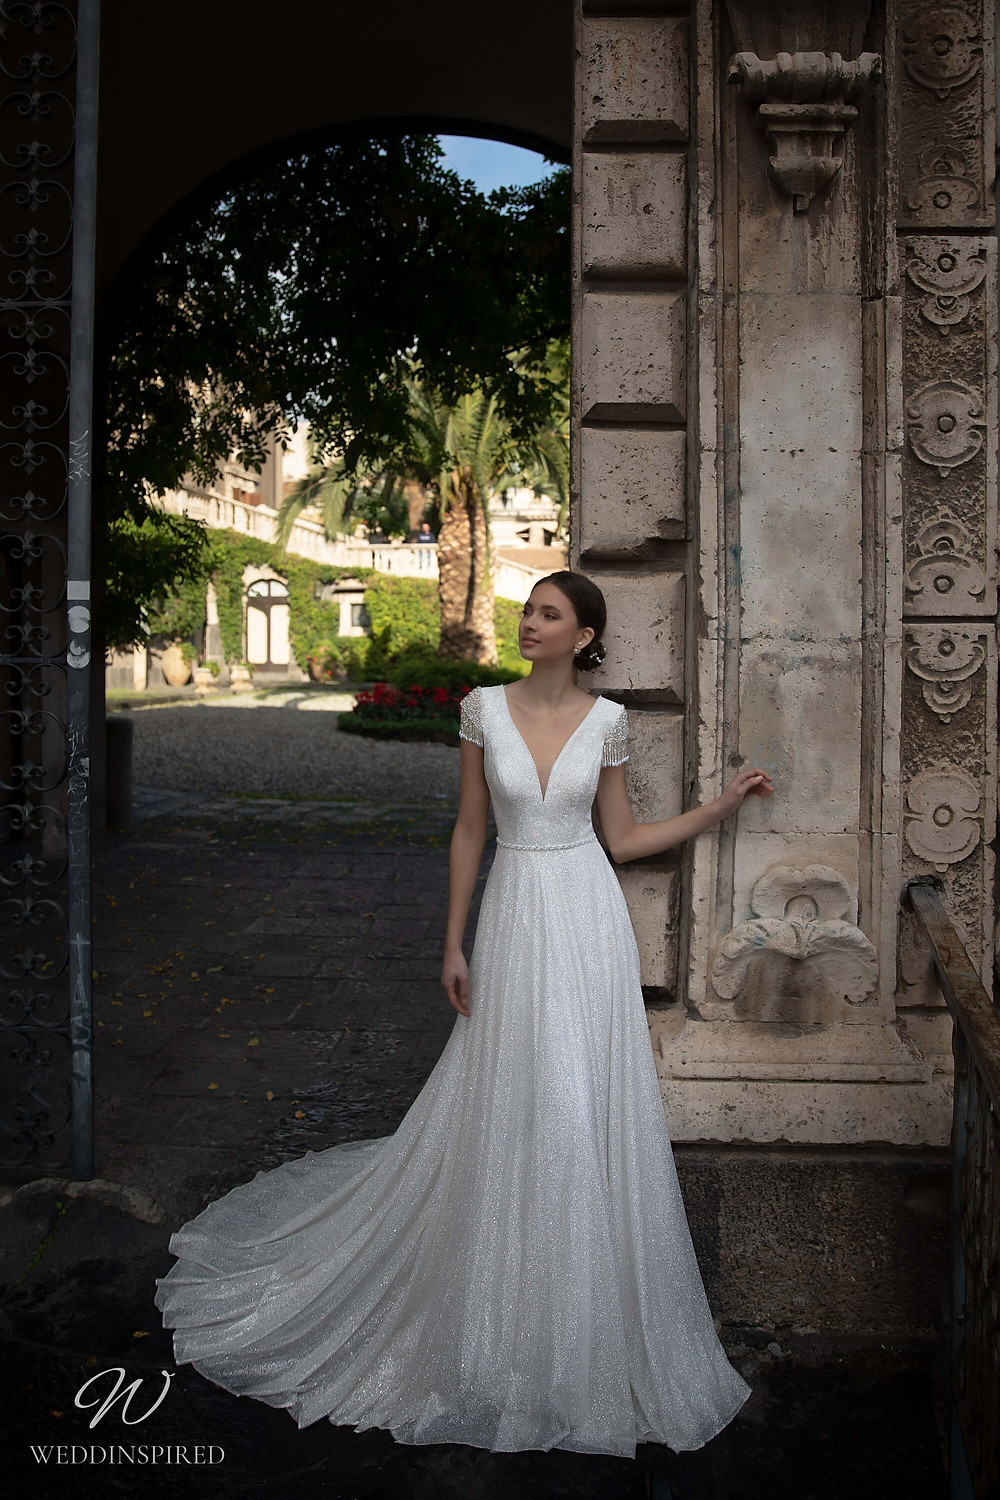 A Naviblue sparkly A-line wedding dress with fringe cap sleeves